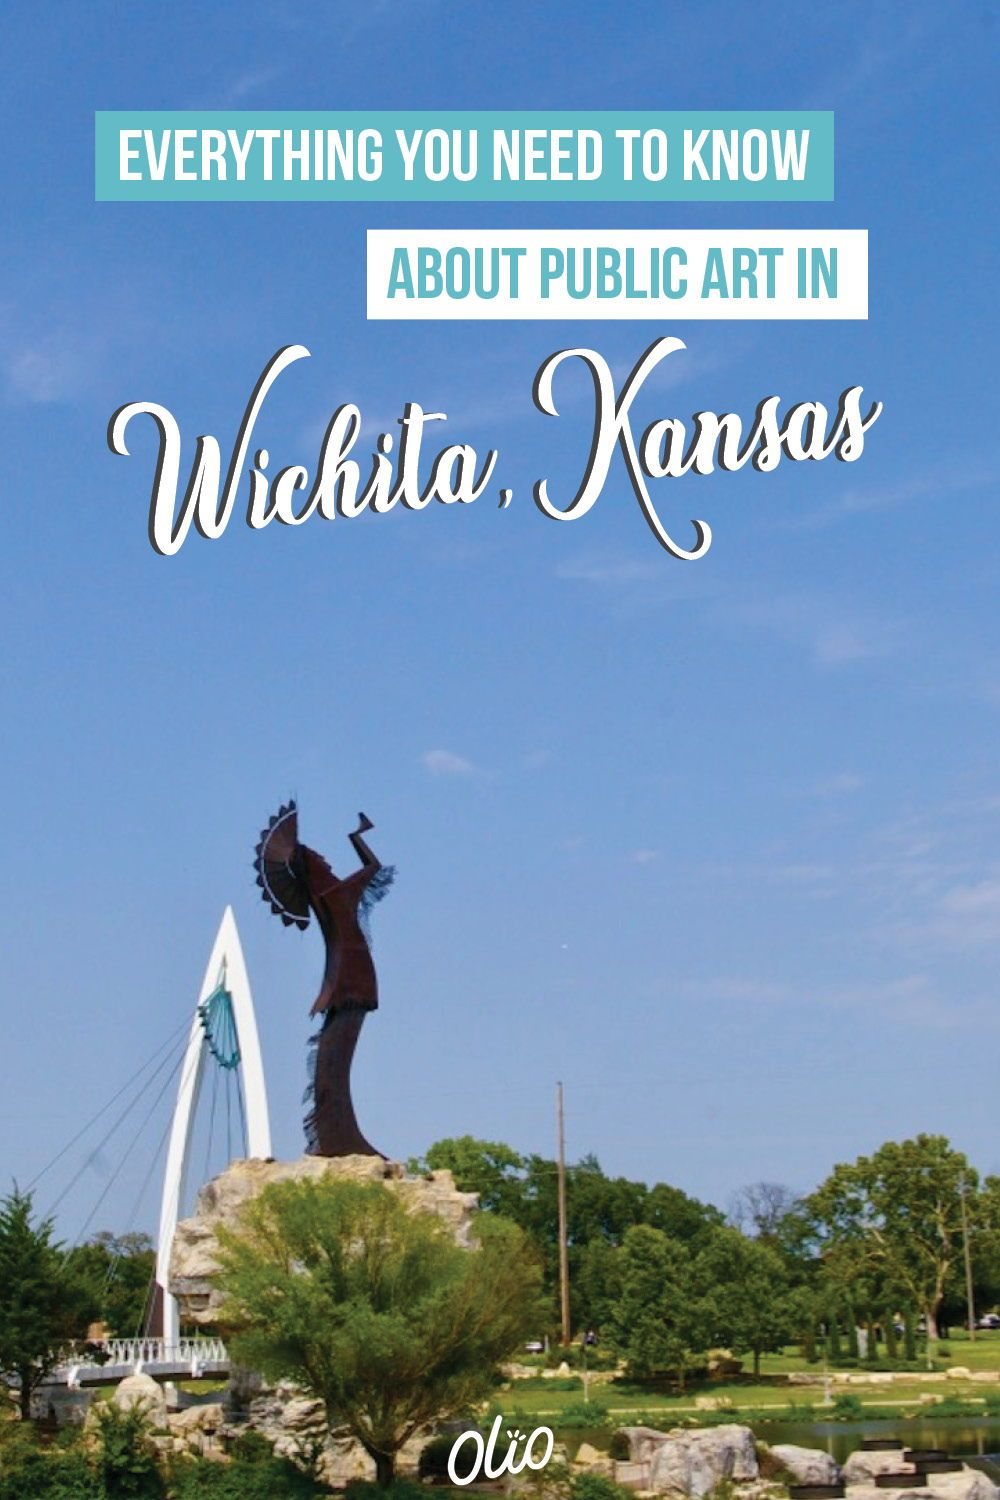 Wichita Kansas Is Full Of Opportunities To Experience Public Art Of The Many Things To Do In Wichita The City S Arts Attr Iowa Travel Wichita Midwest Travel